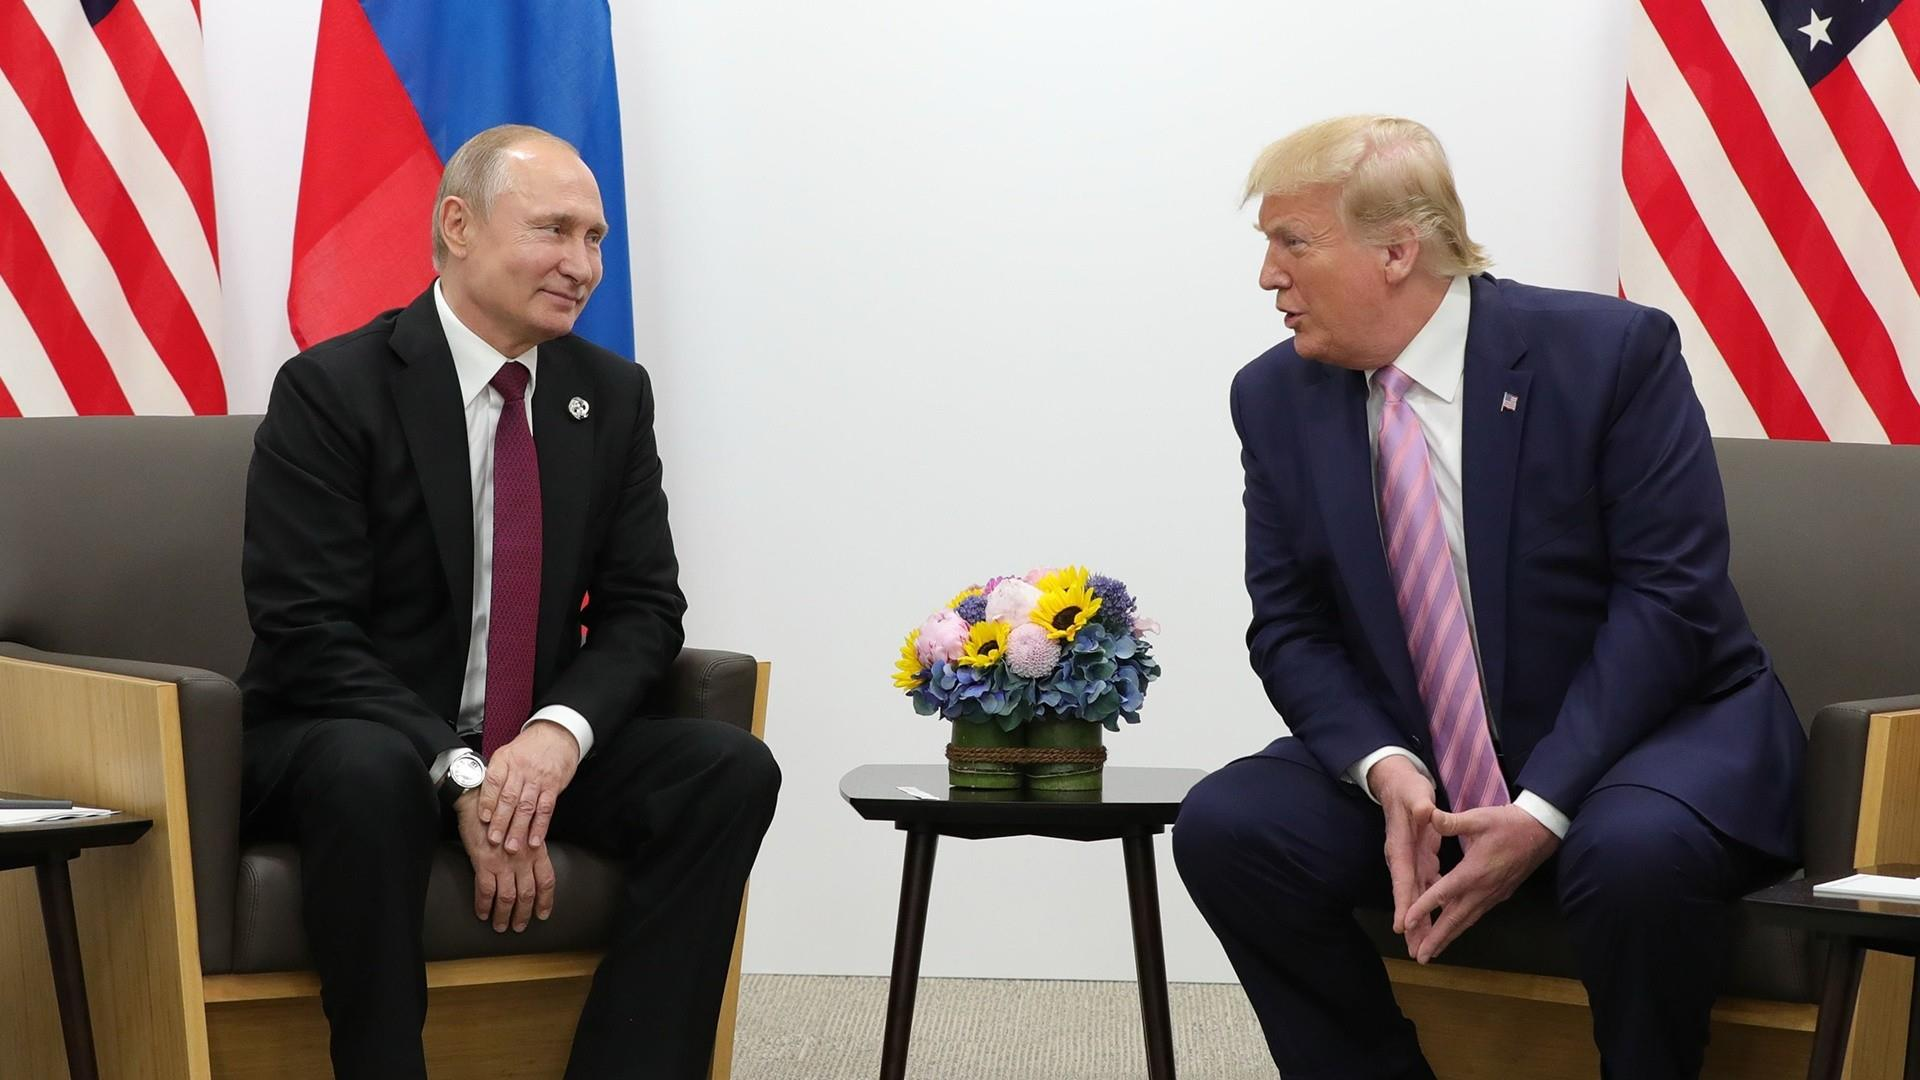 Trump to Putin: 'Don't meddle in the election'